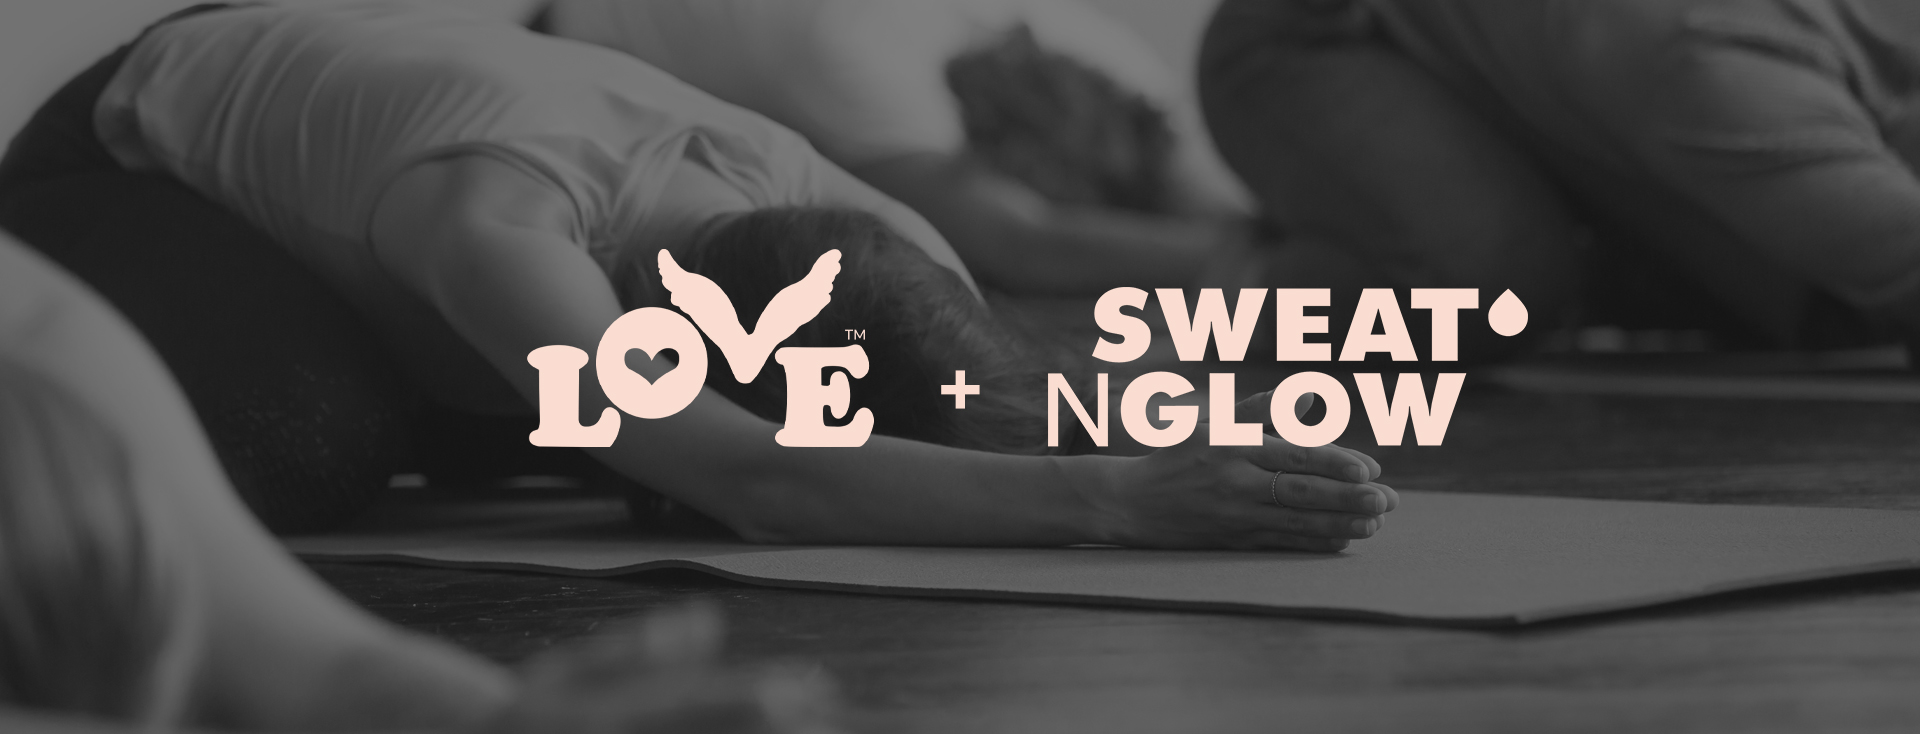 Love Button Partners with SweatNGlow for Congressional Yoga Day